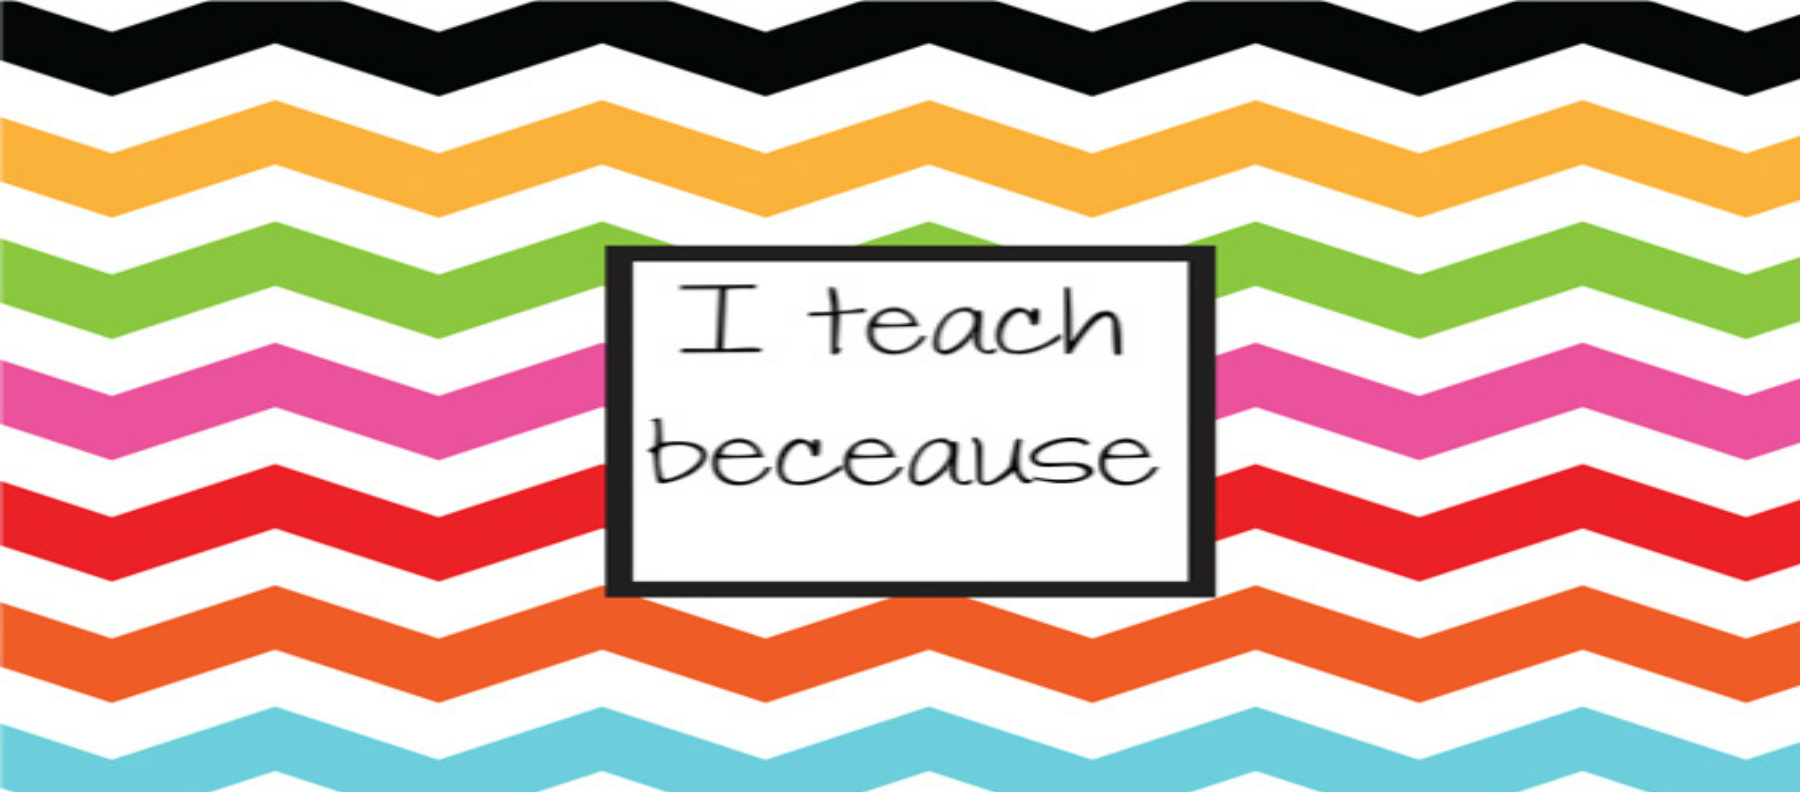 I teach because...